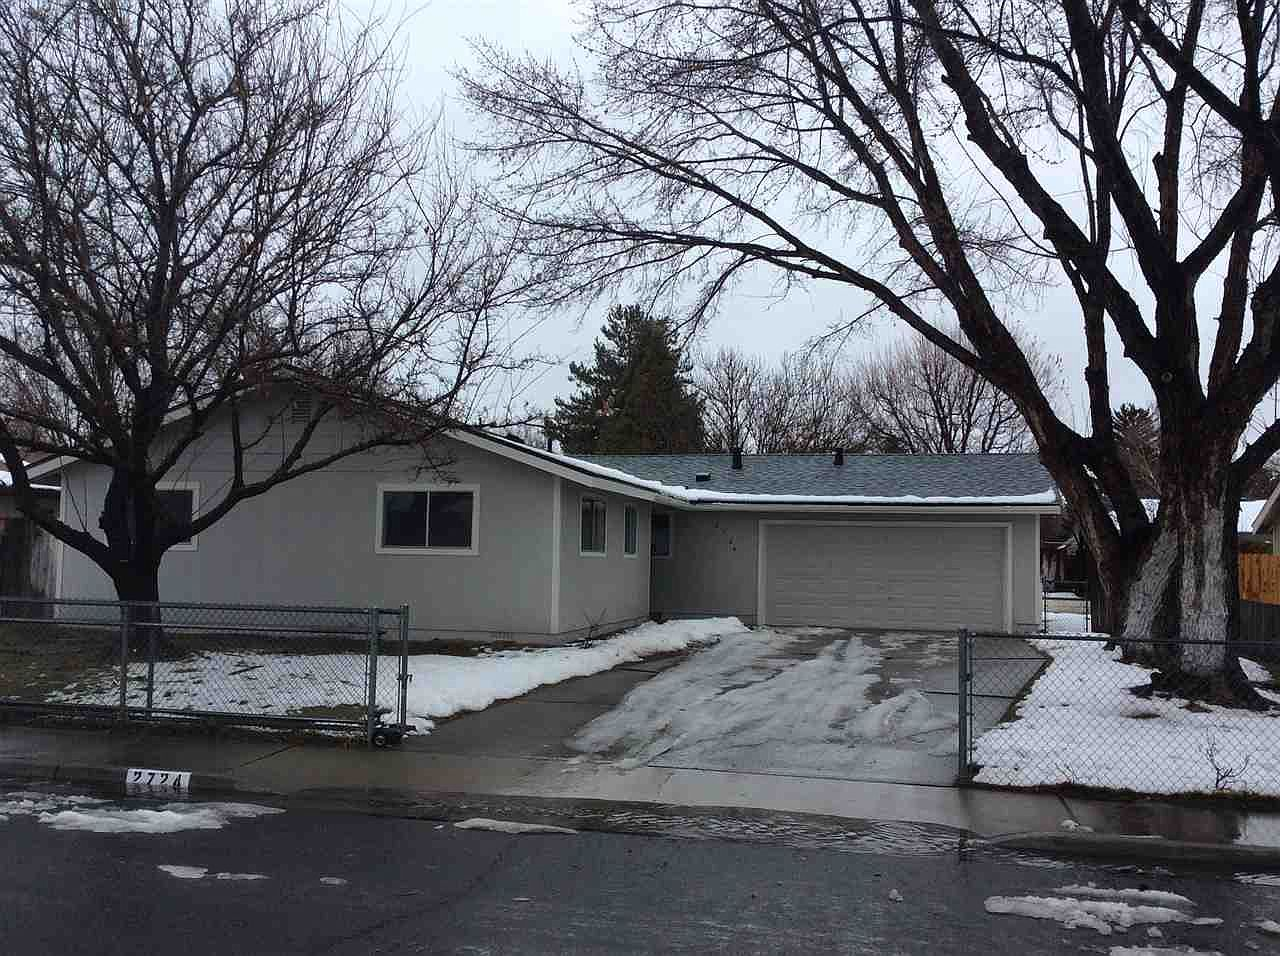 2724 Baker Dr Carson City Nv 89701 Zillow